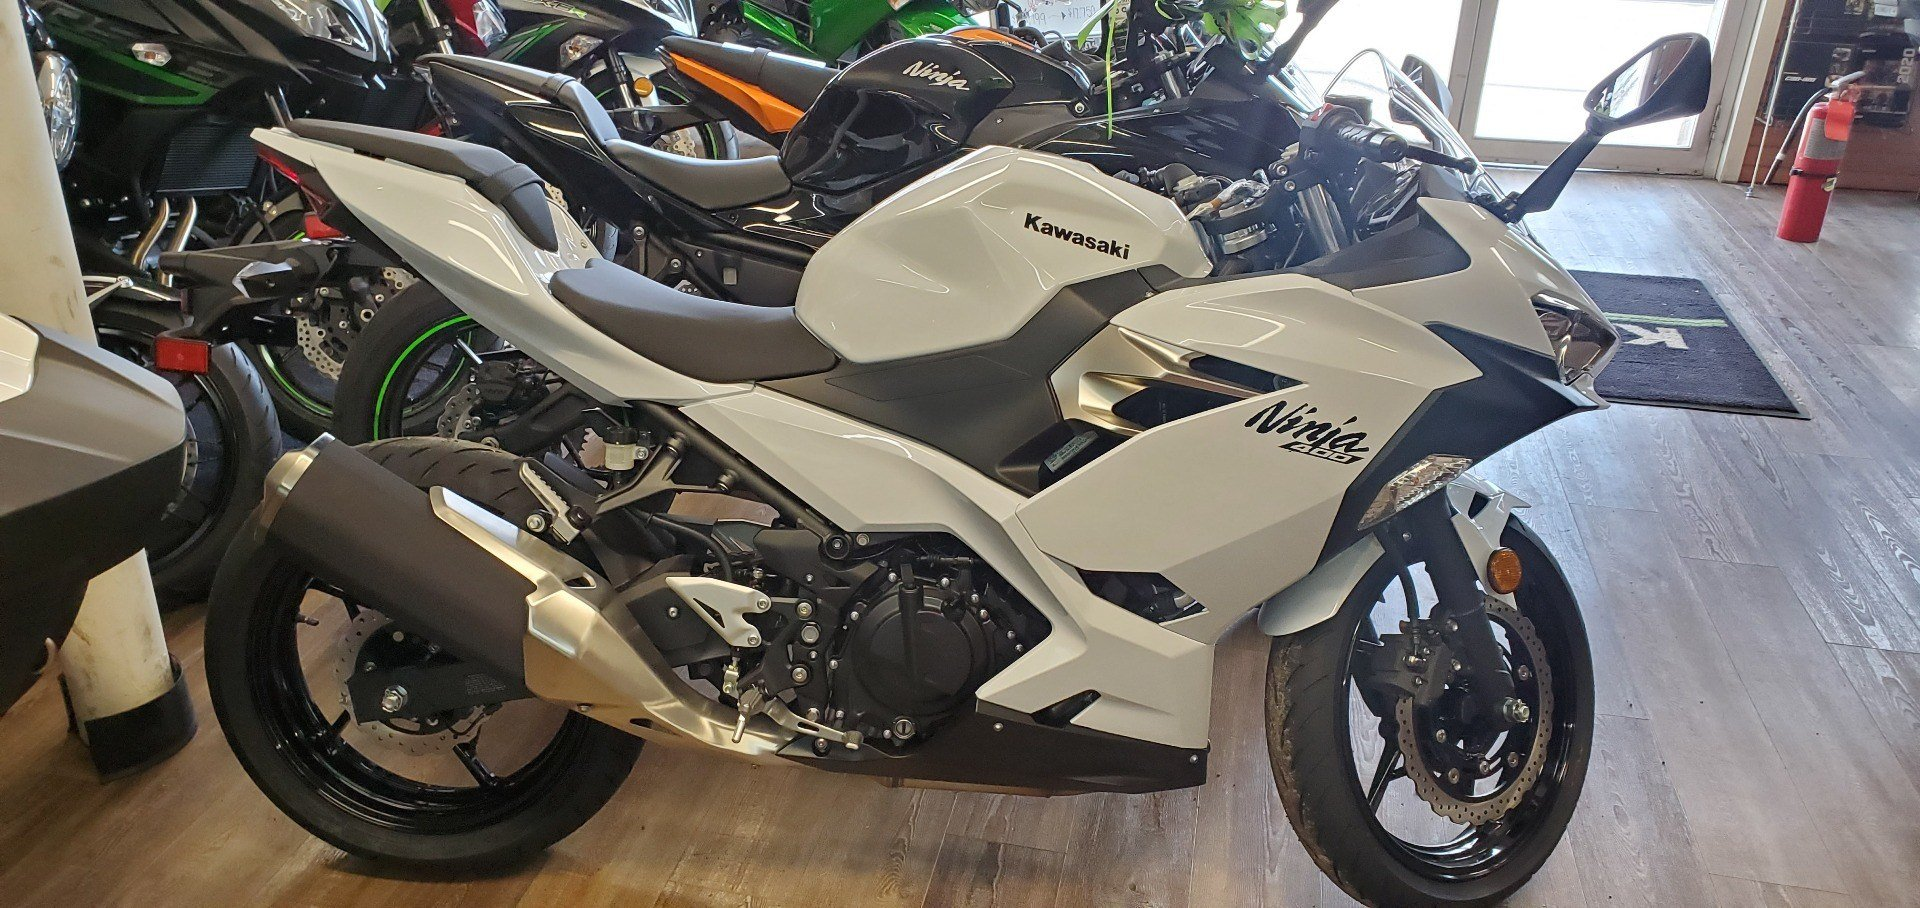 2020 Kawasaki Ninja 400 in Ledgewood, New Jersey - Photo 2